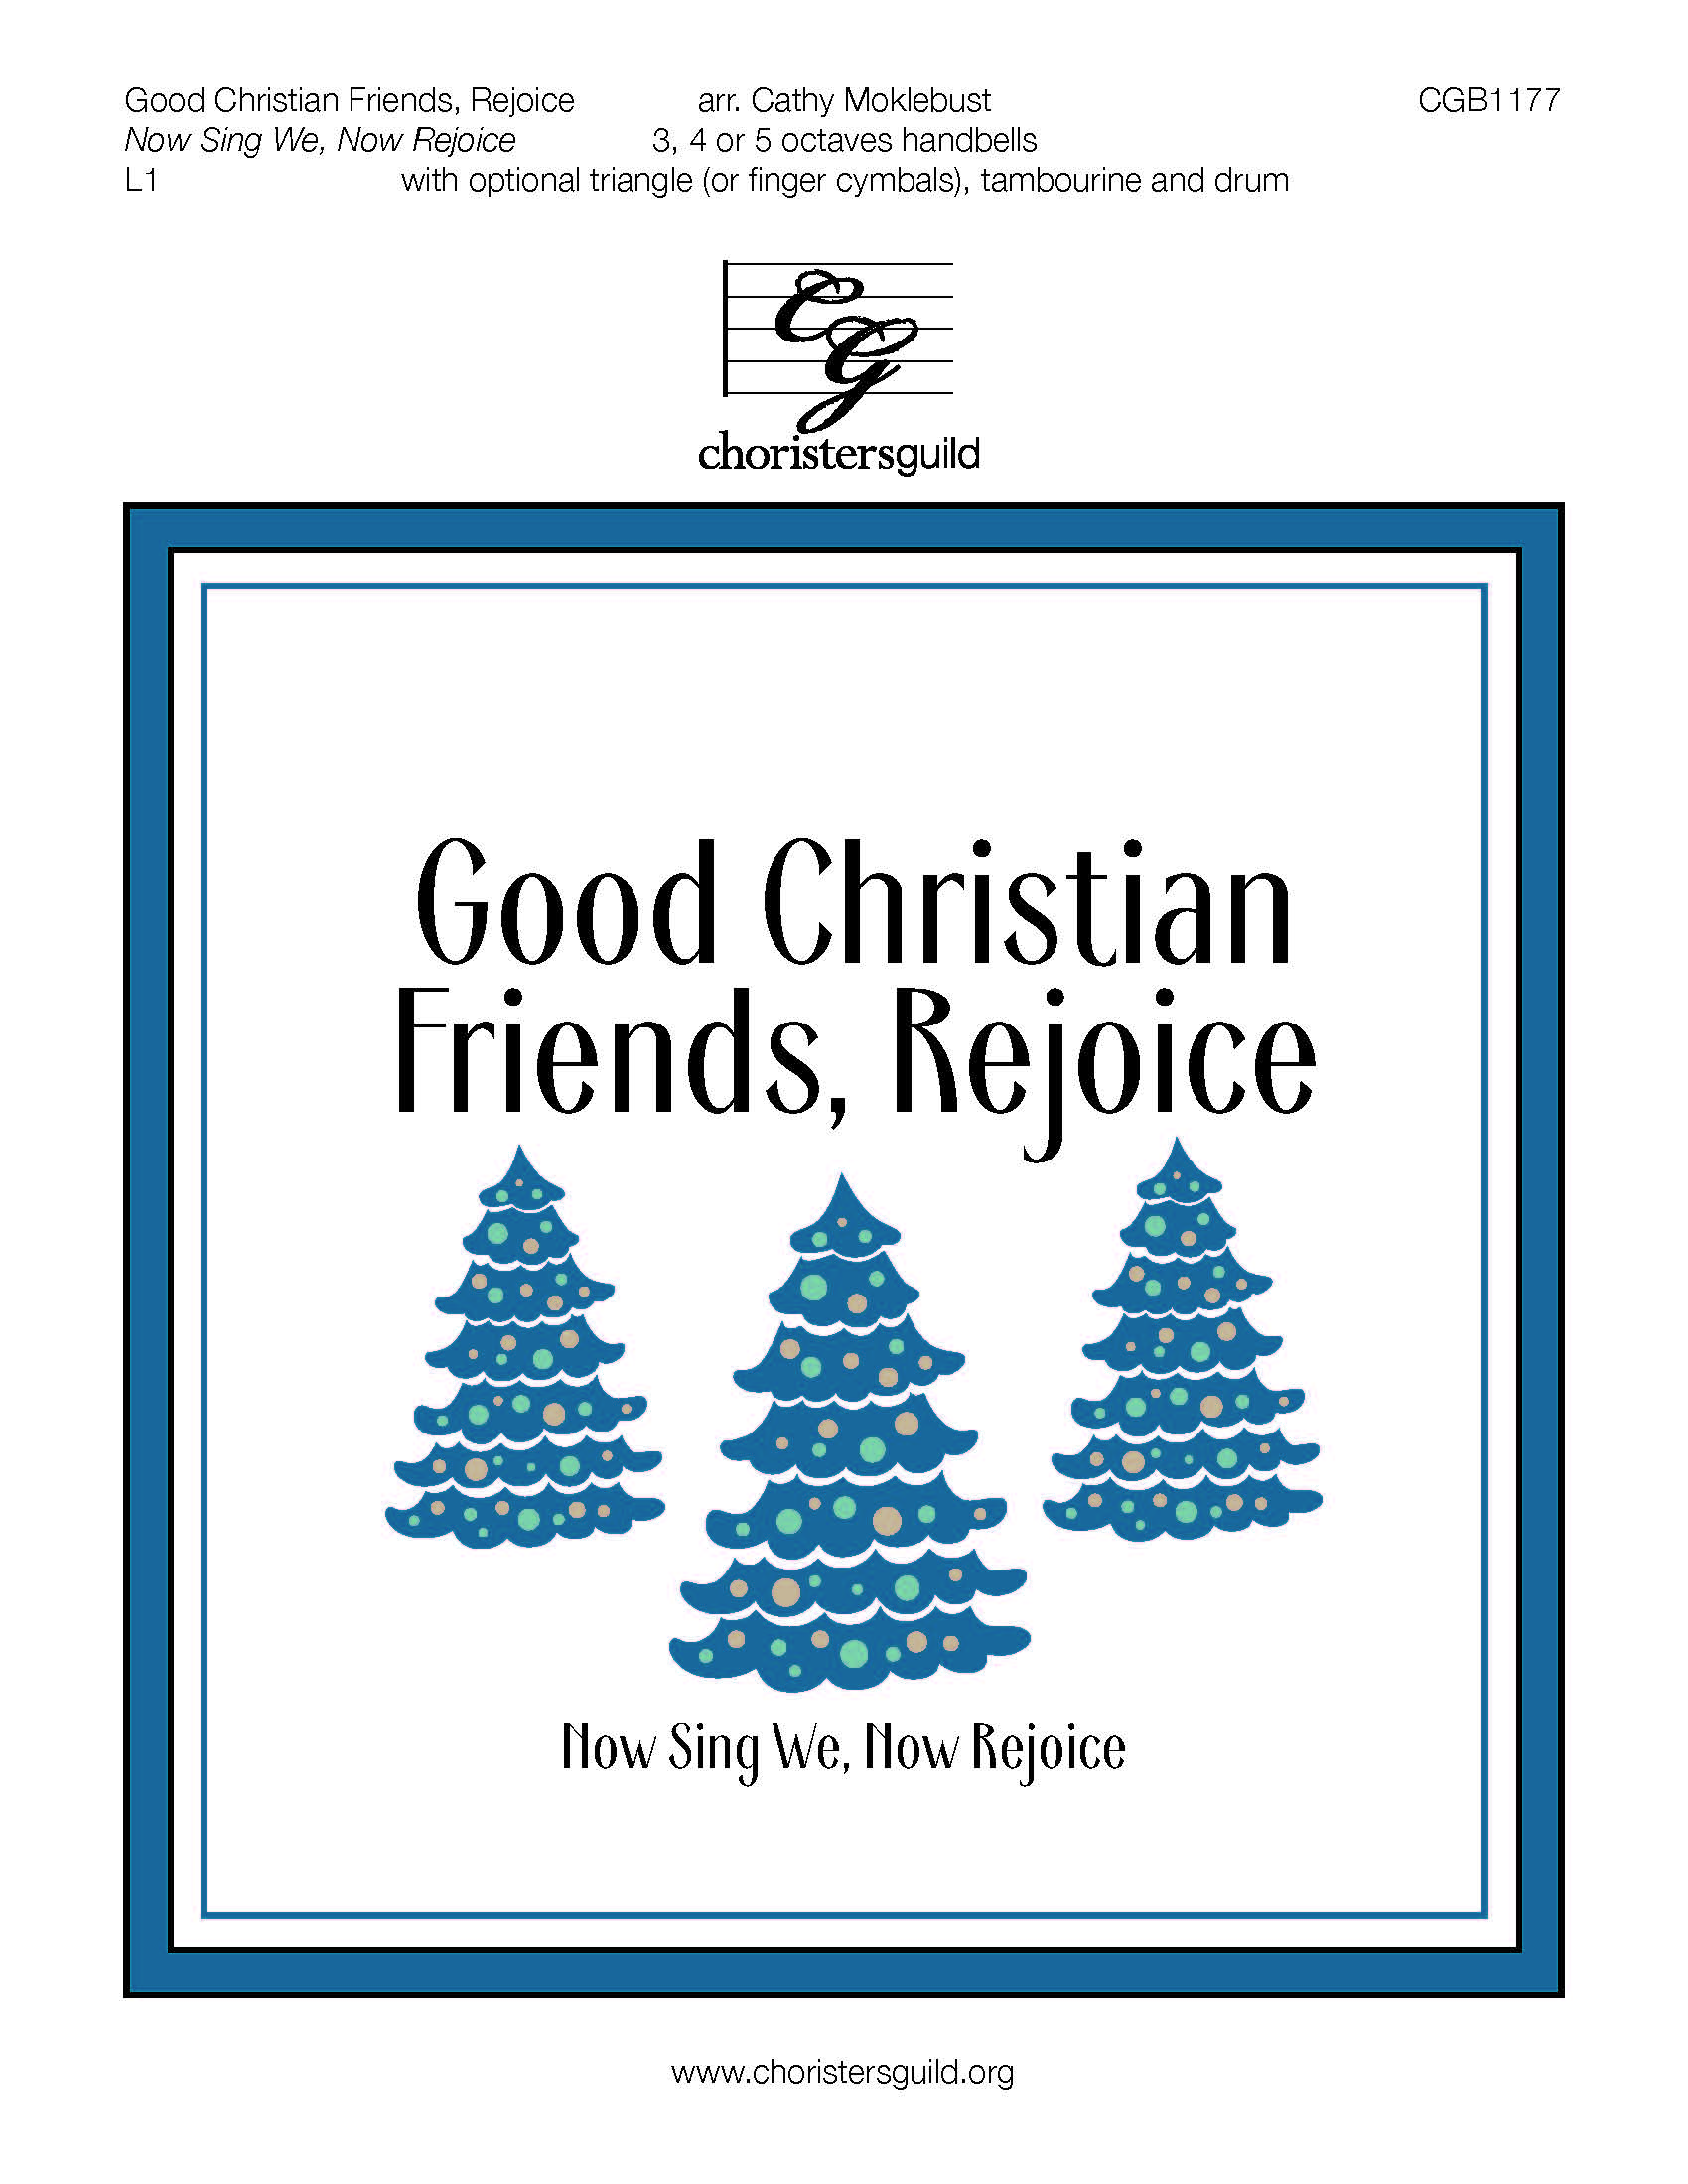 Good Christian Friends, Rejoice - 3-5 octaves